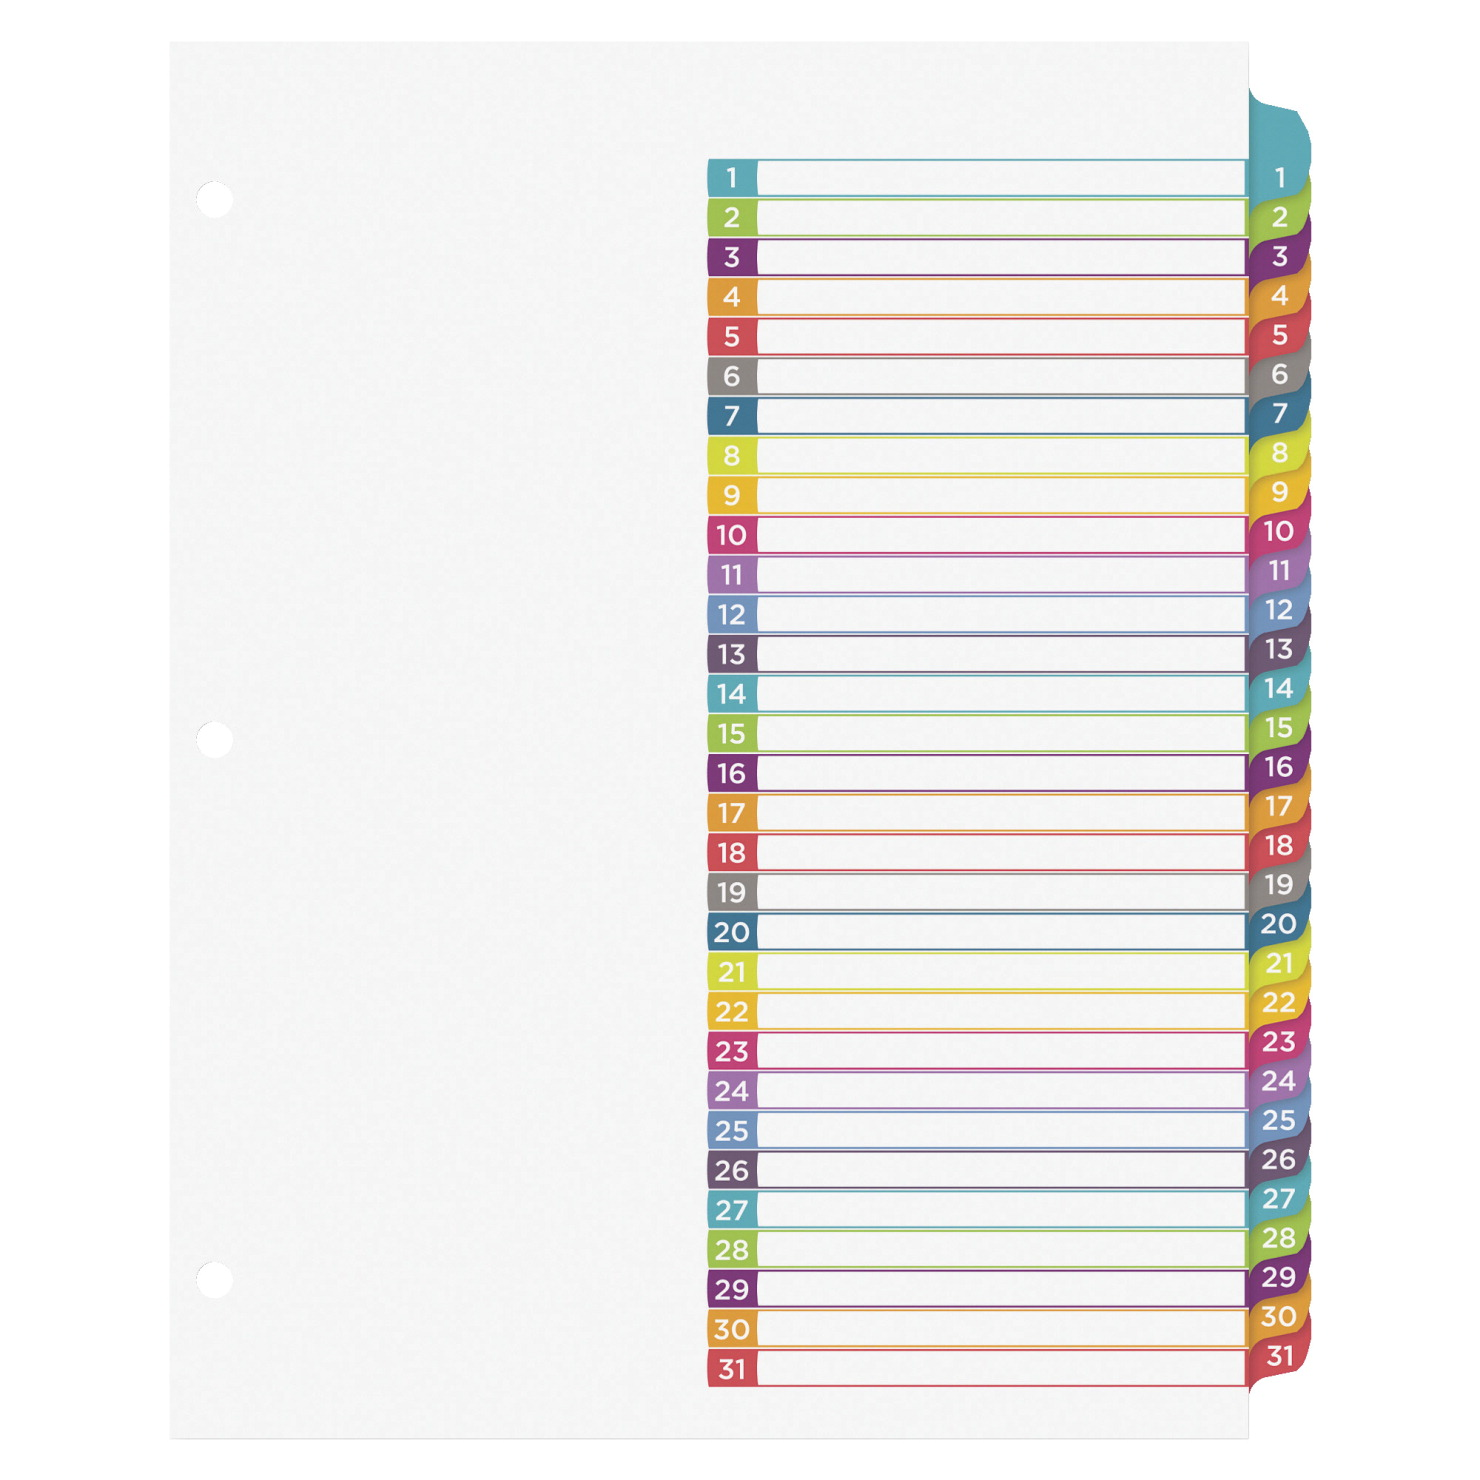 Avery ready index 1 31 tab dividers 31 tabs multiple for Index divider templates